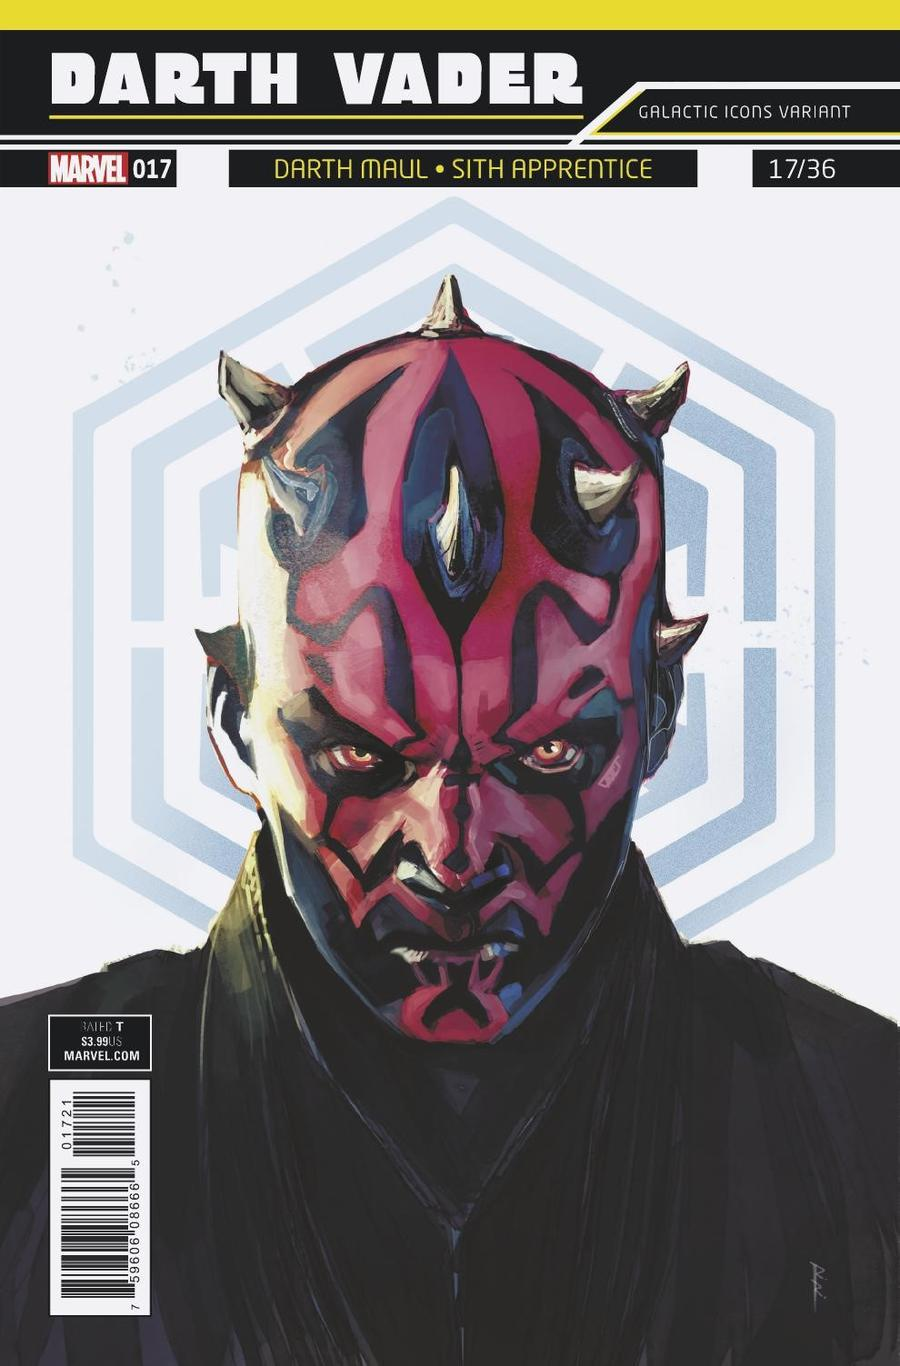 Darth Vader Vol 2 #17 Cover B Variant Rod Reis Galactic Icon Cover